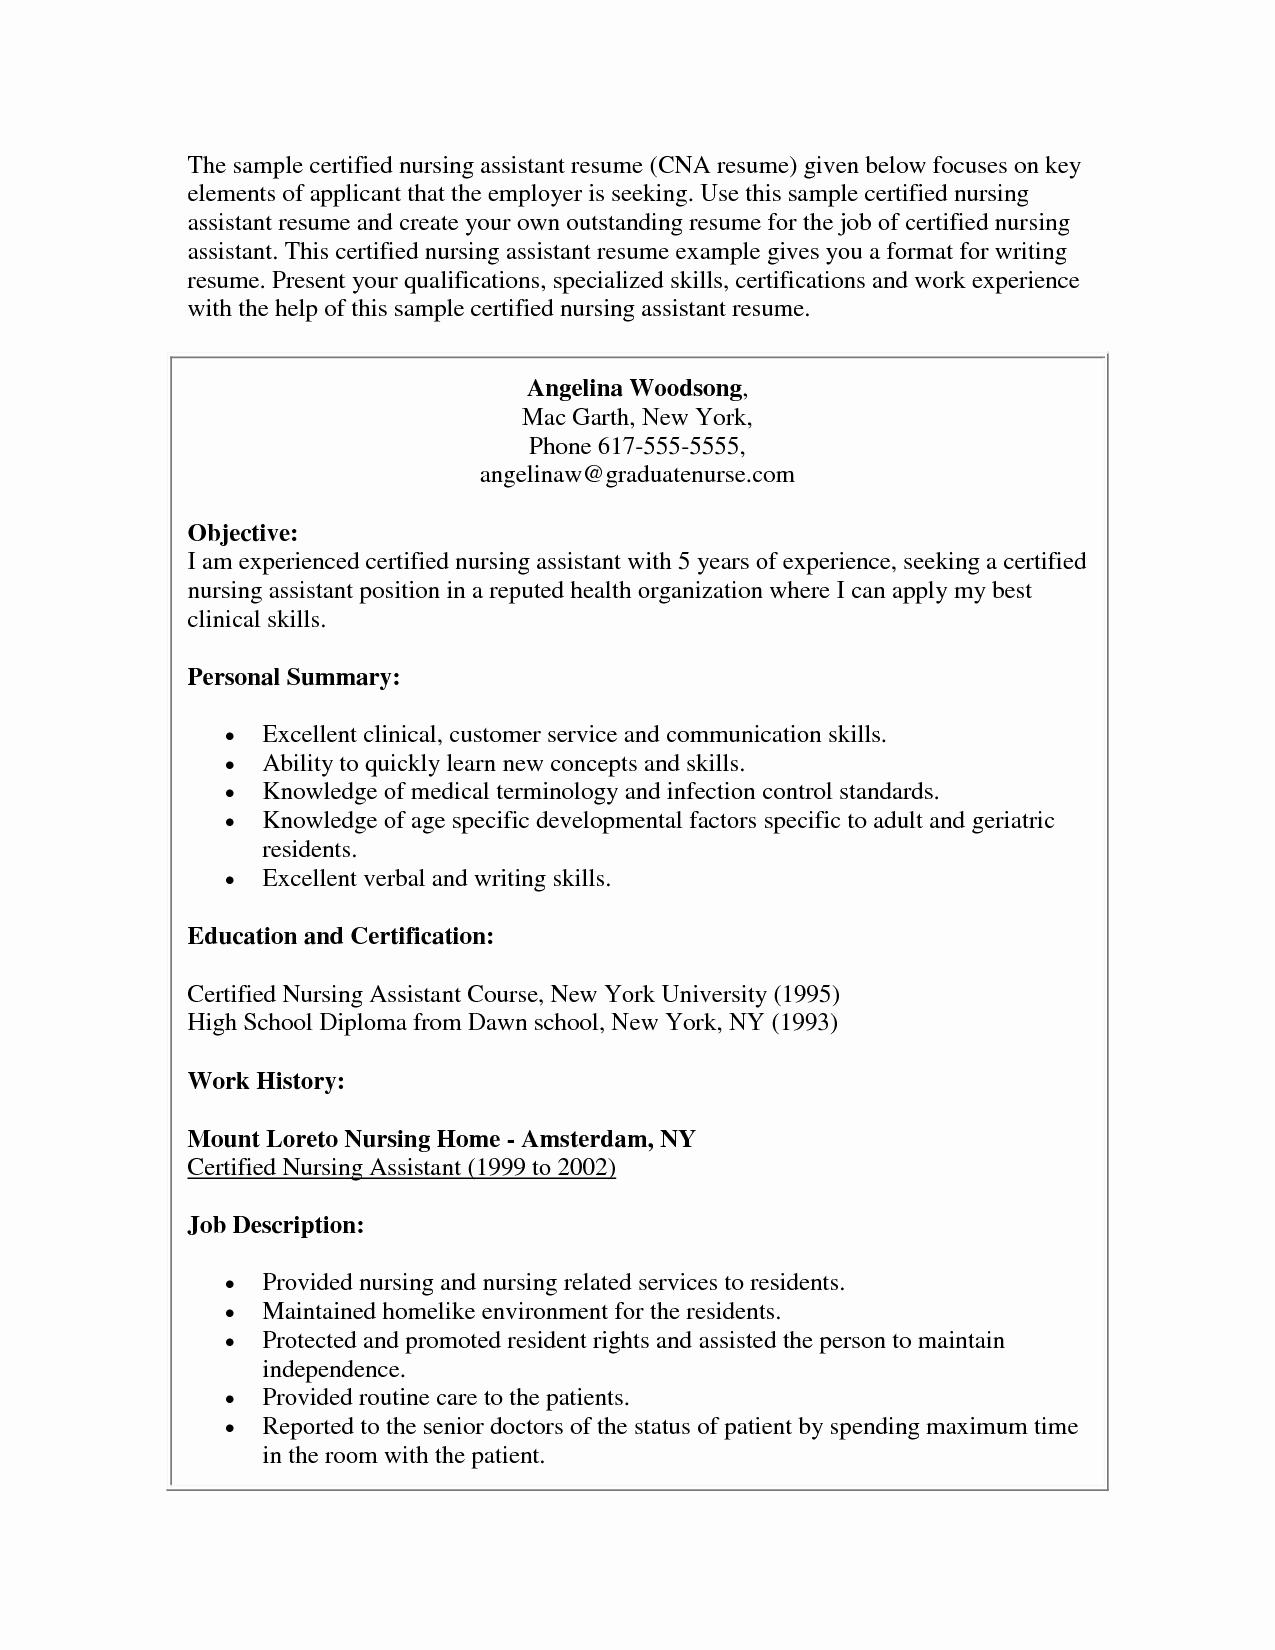 Cna Resume Objective - Cna Resume Examples New Resume Sites Fresh Free Resume Examples